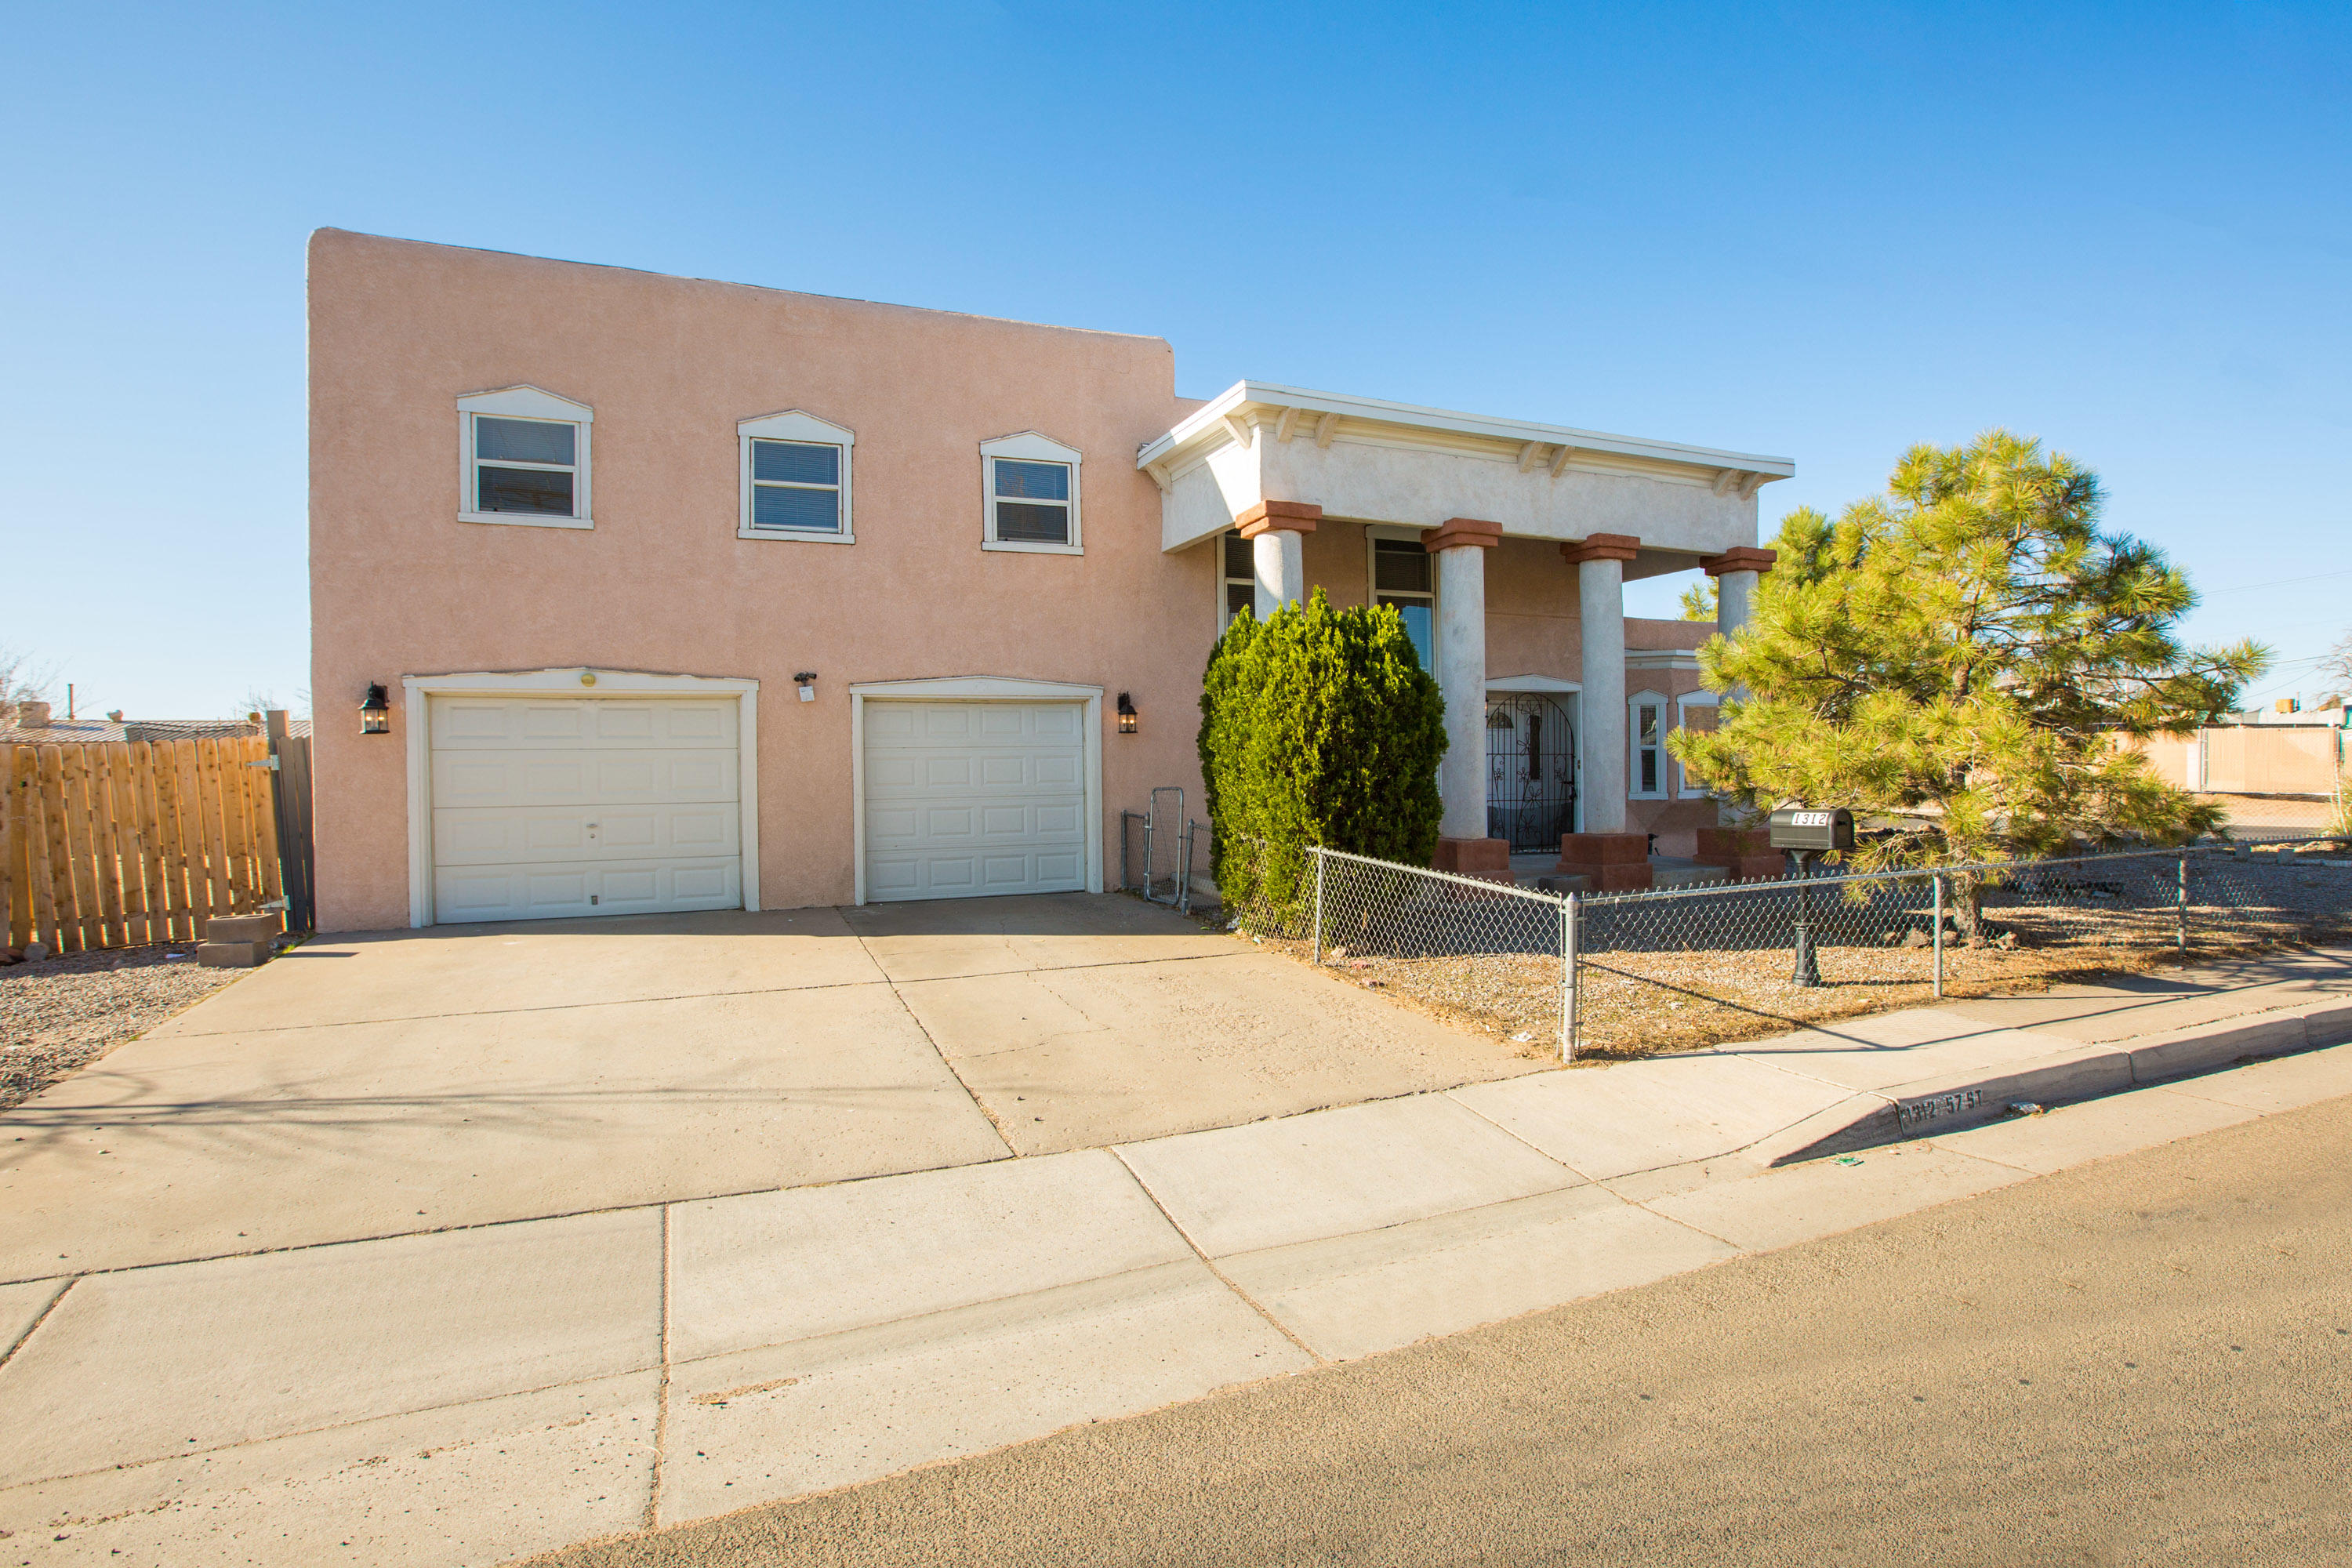 Great opportunity to own this house near freeway and minutes from downtown. Home has 3 bedrooms and 2 full baths. There's an upstairs living area with great views of the mountains